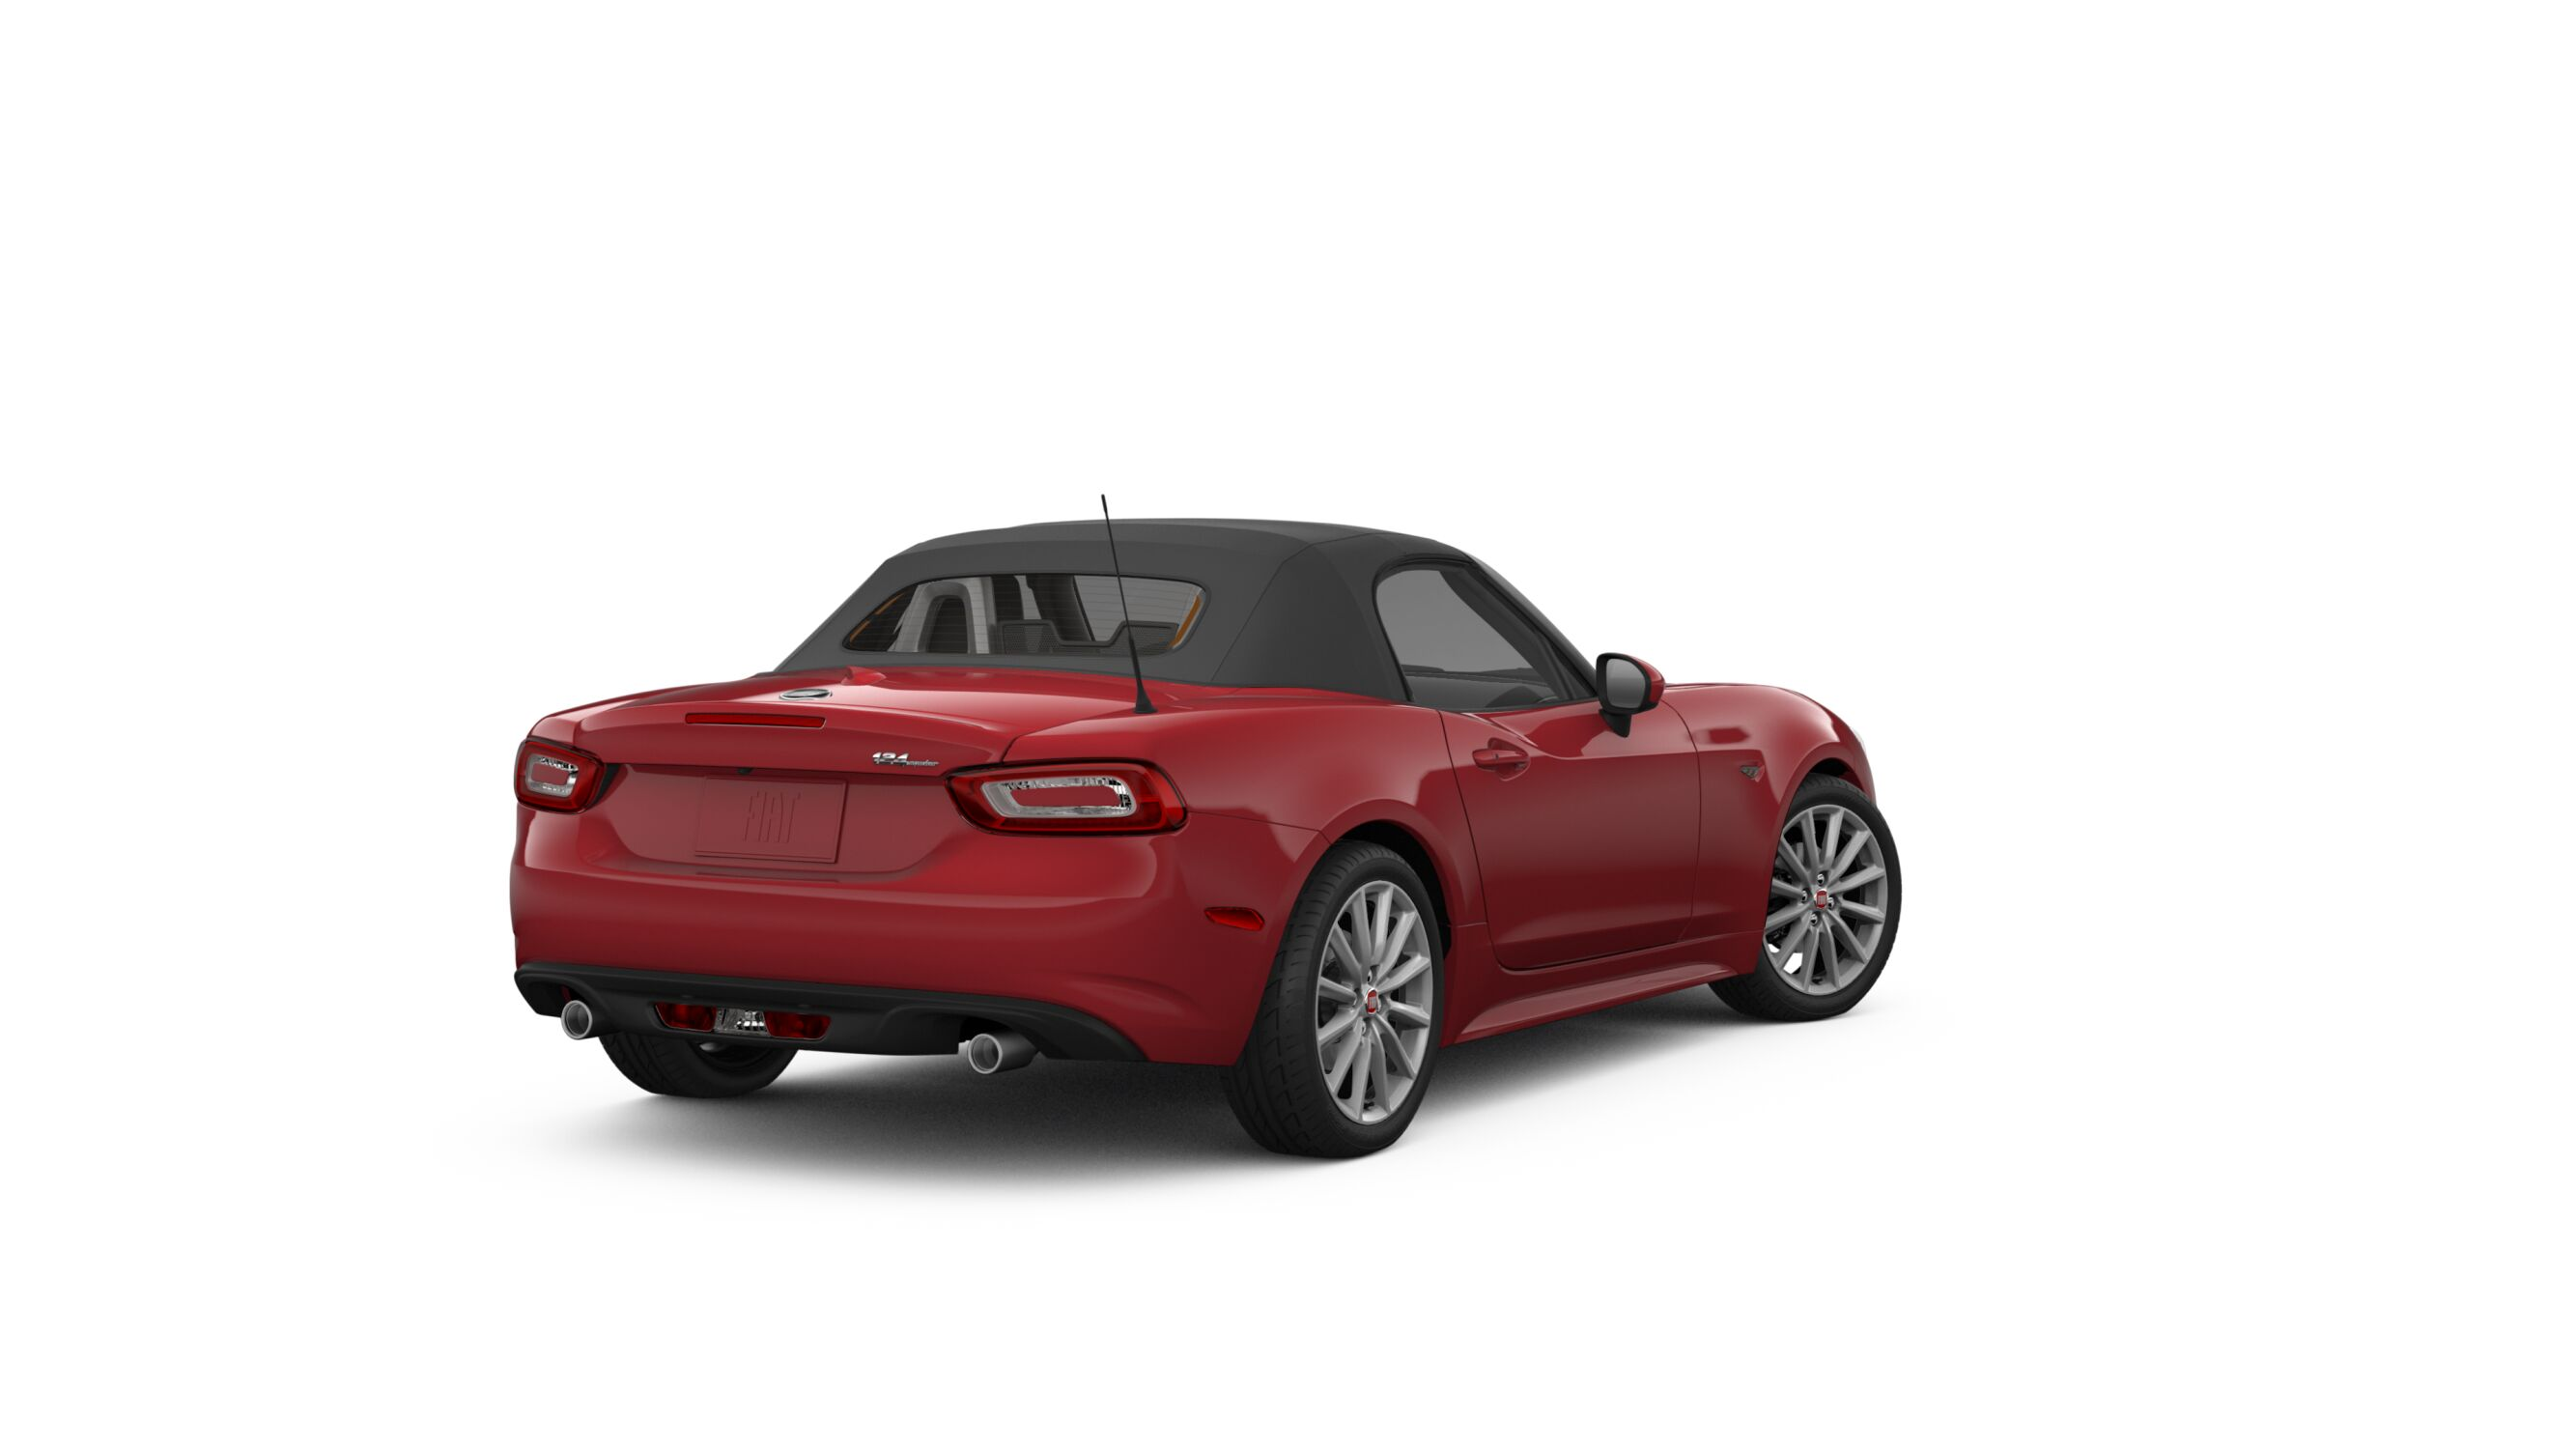 2018 FIAT 124 Spider Lusso Red Exterior Rear View